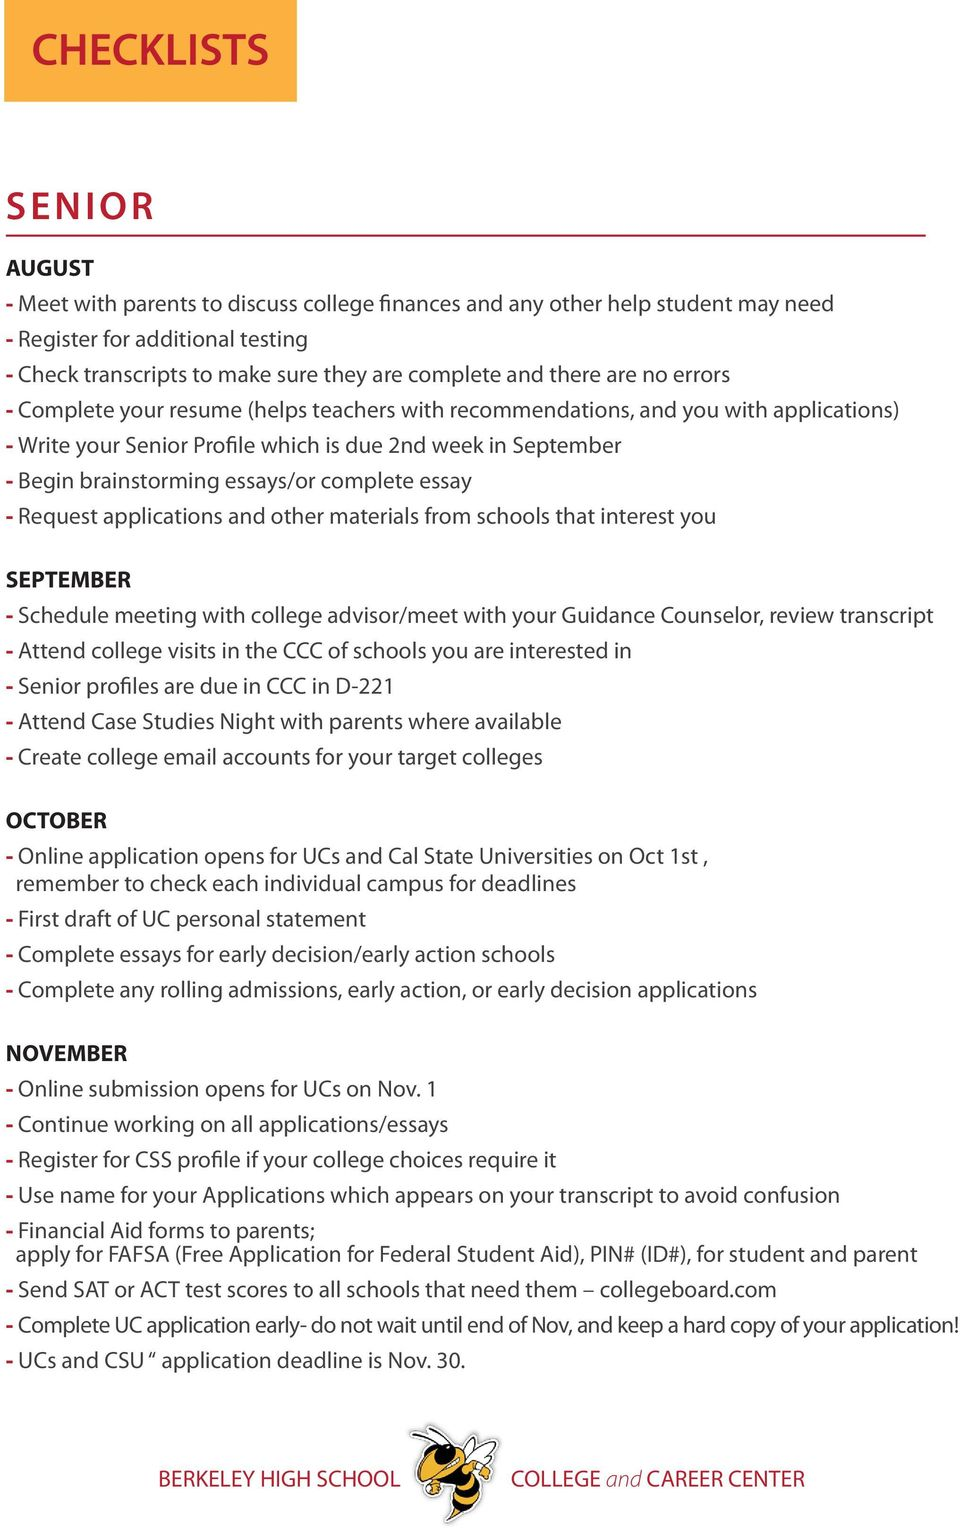 essays/or complete essay - Request applications and other materials from schools that interest you SEPTEMBER - Schedule meeting with college advisor/meet with your Guidance Counselor, review